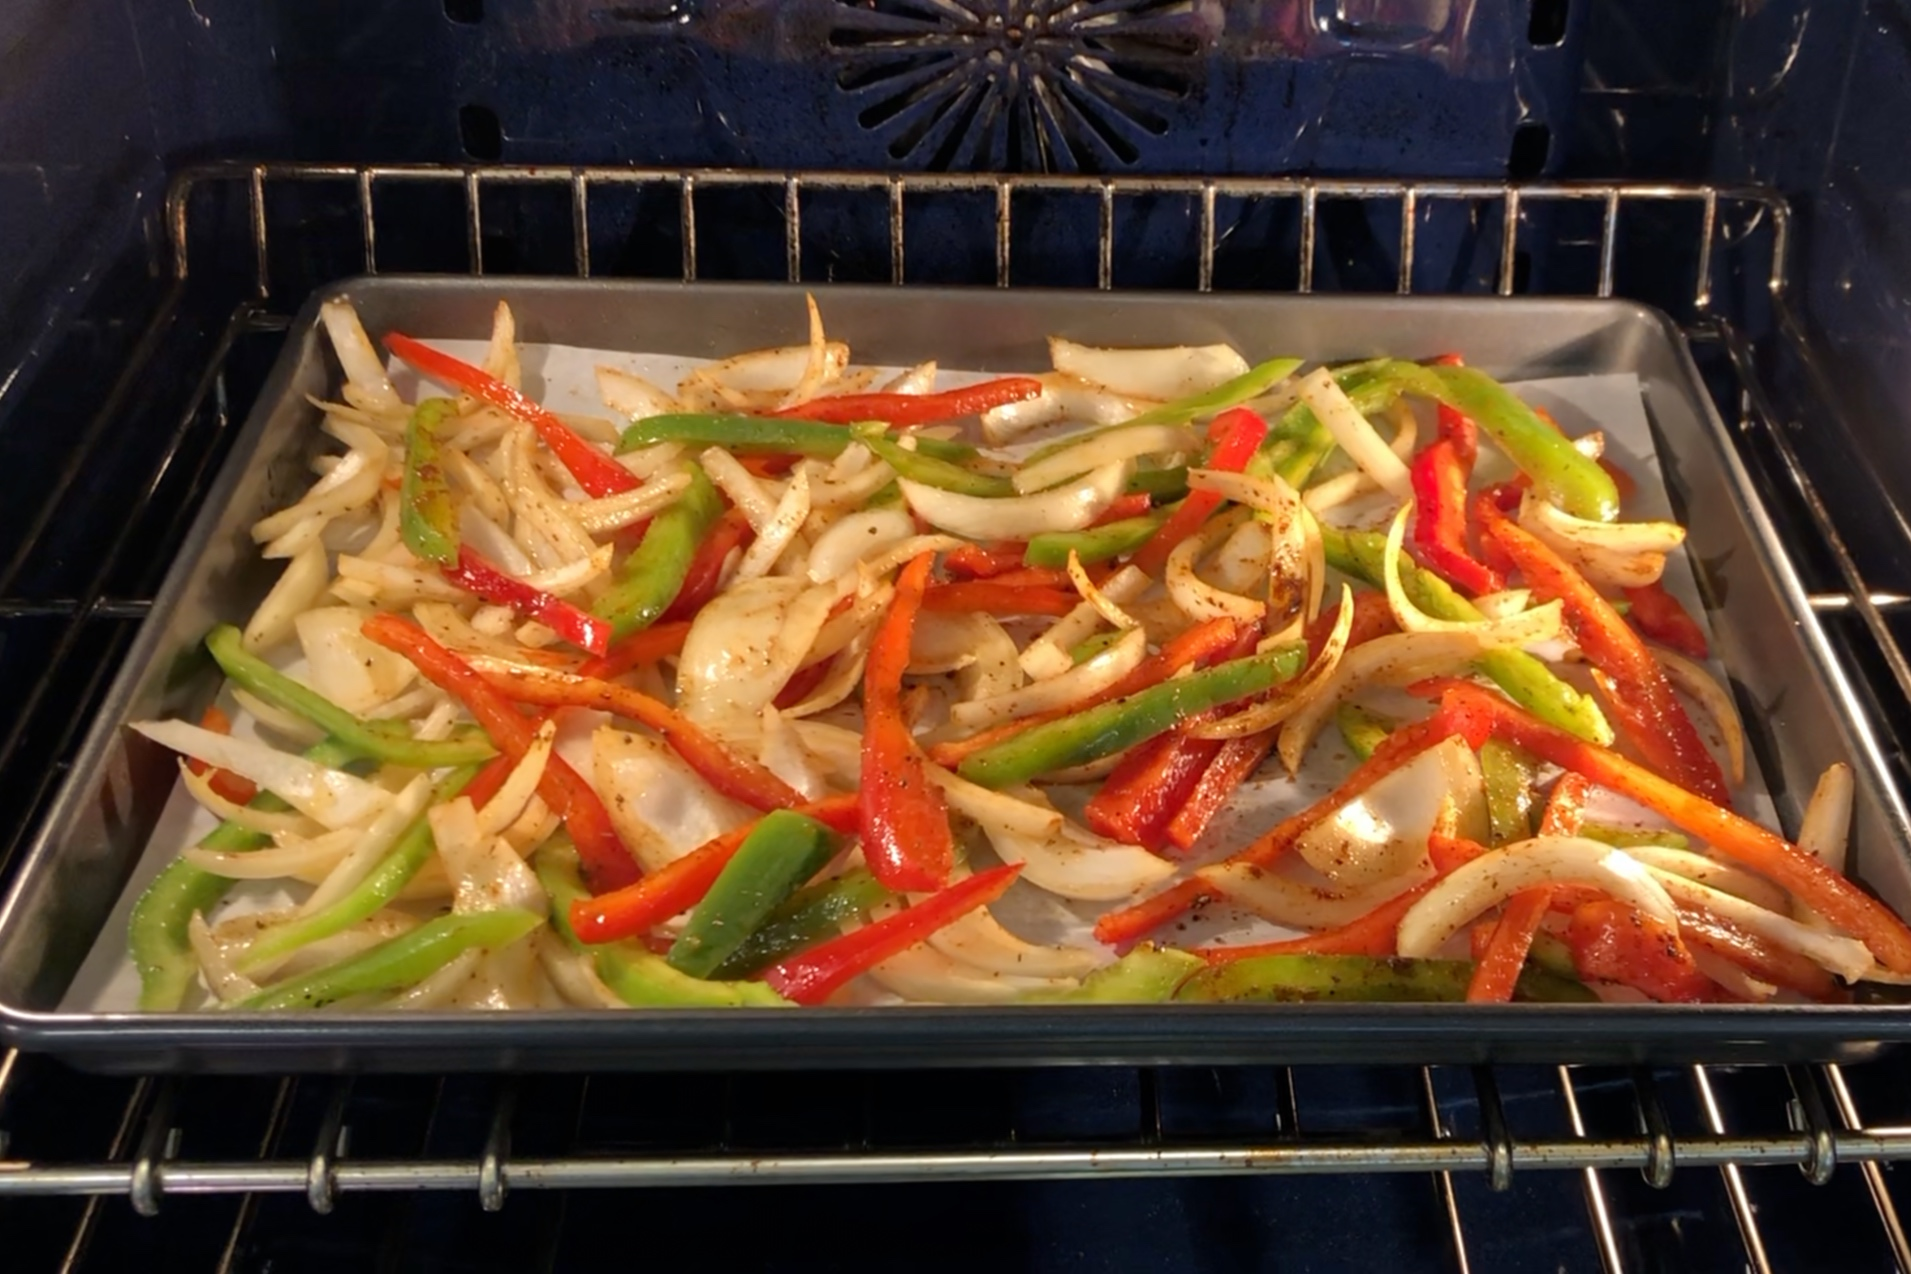 7. Spread veggies evenly on the baking sheet. Cook for 10 minutes. -